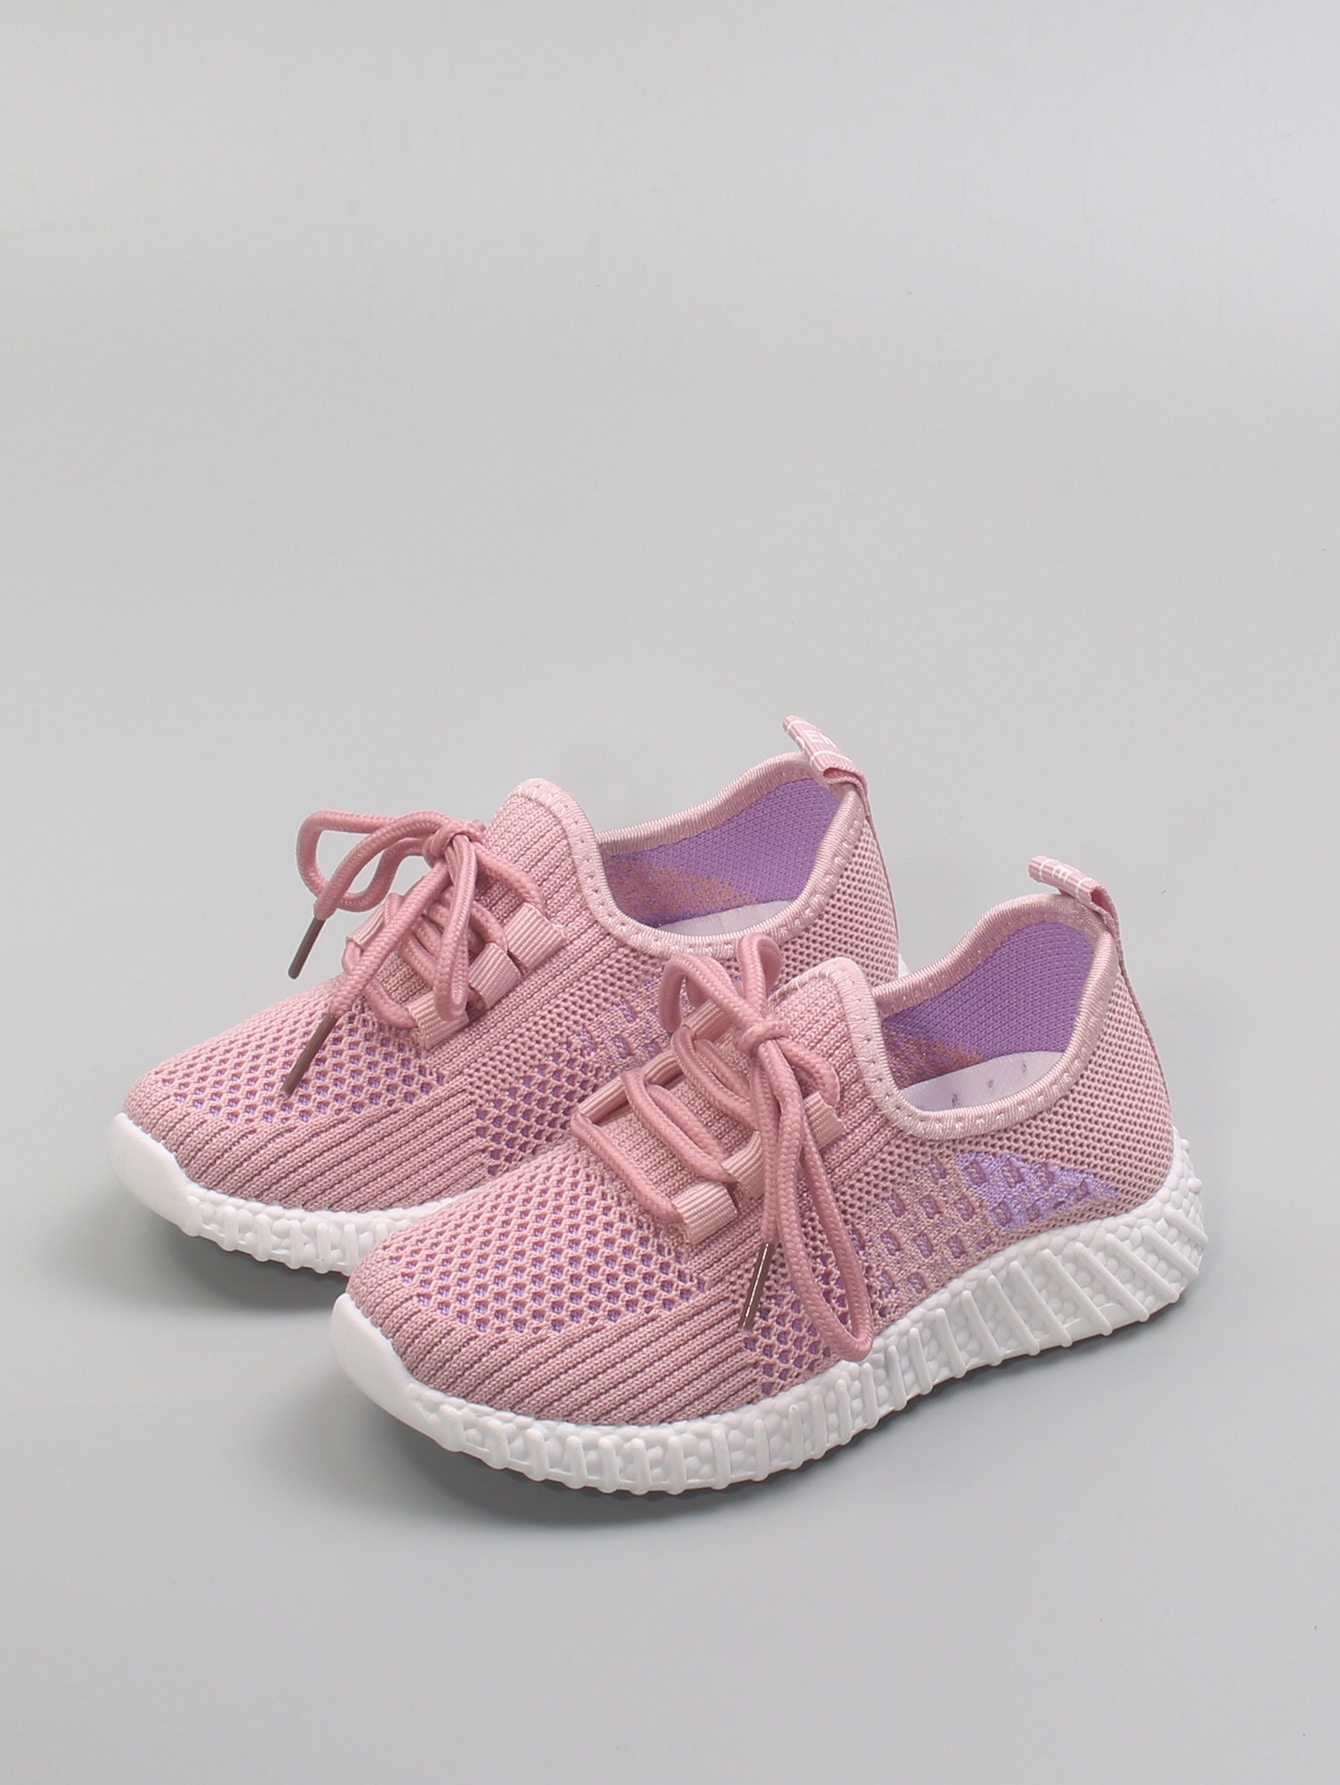 Boys Lace Up Decor Knit Sneakers